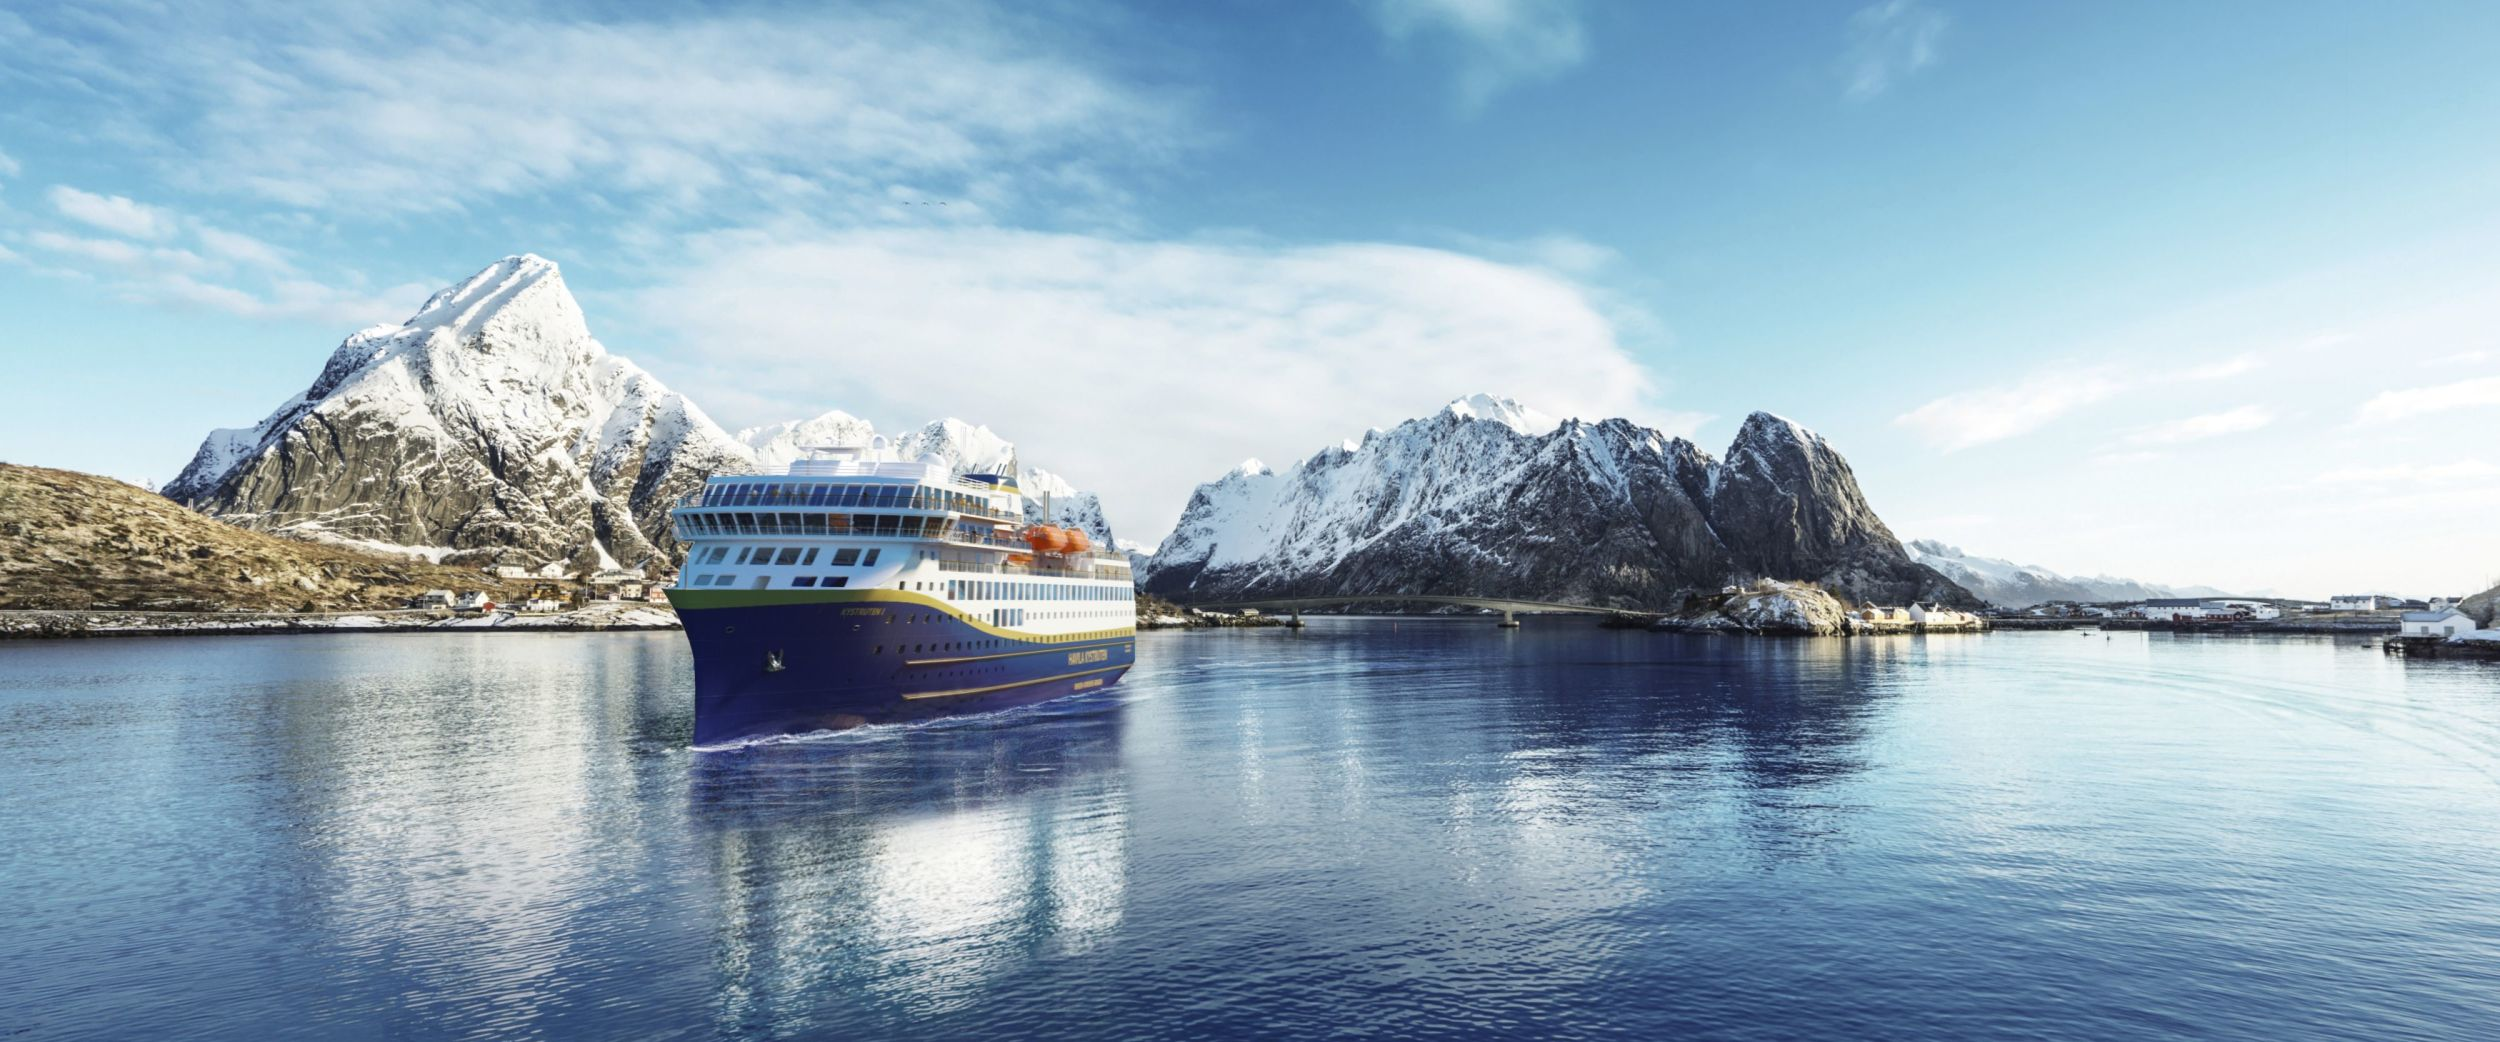 Havila ship on a calm sea with the Lofoten mountains in the background.